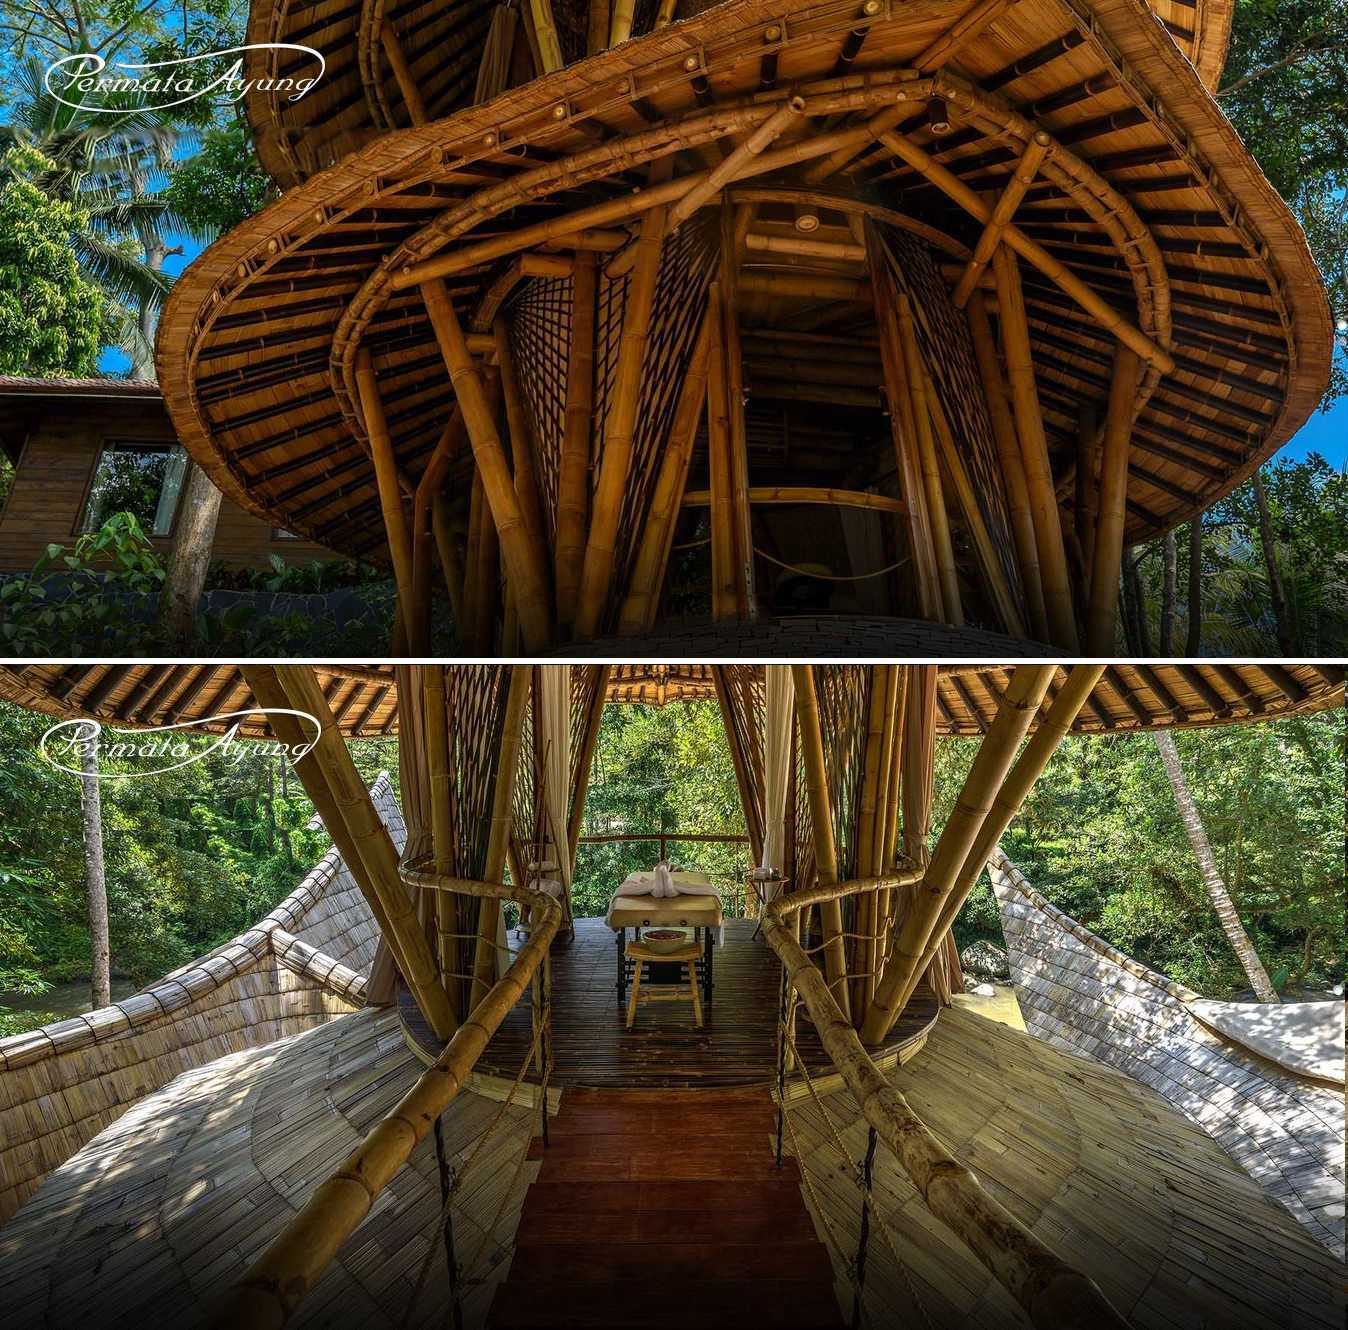 Agung Budi Raharsa | Architecture & Engineering Permata Ayung Bamboo Spa & Wellness Center - Bali Ubud, Kecamatan Ubud, Kabupaten Gianyar, Bali, Indonesia Ubud, Kecamatan Ubud, Kabupaten Gianyar, Bali, Indonesia Agung-Budi-Raharsa-Permata-Ayung-Bamboo-Spa   88554